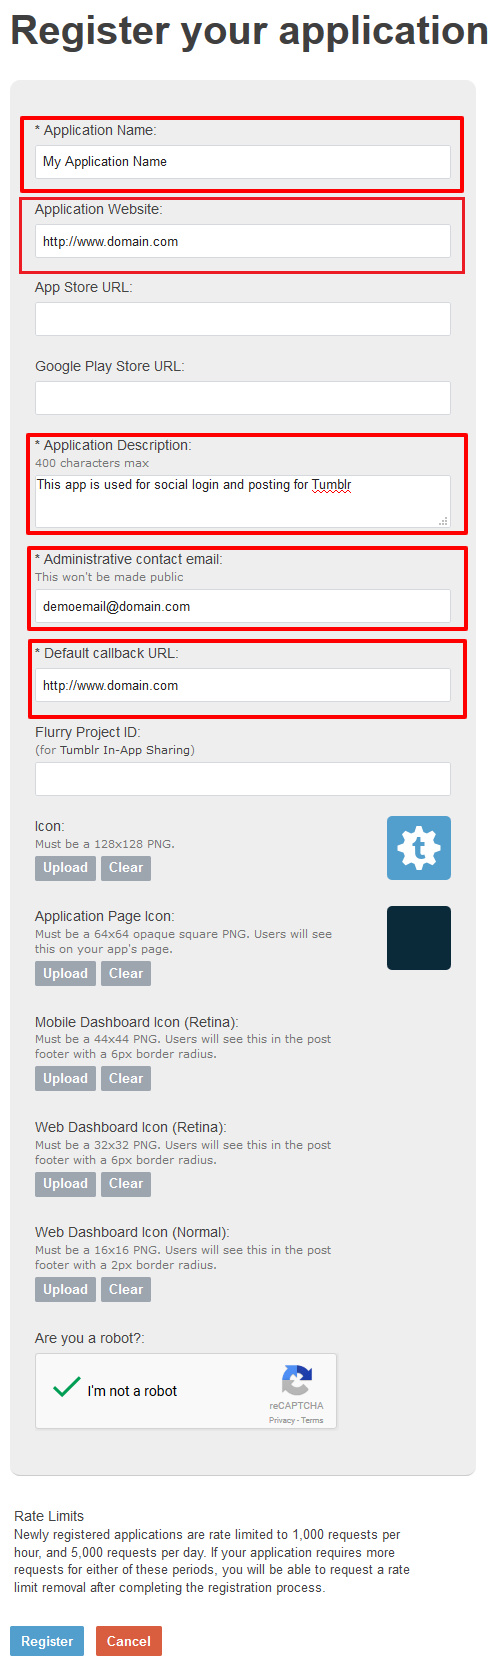 application information & Redirect URL